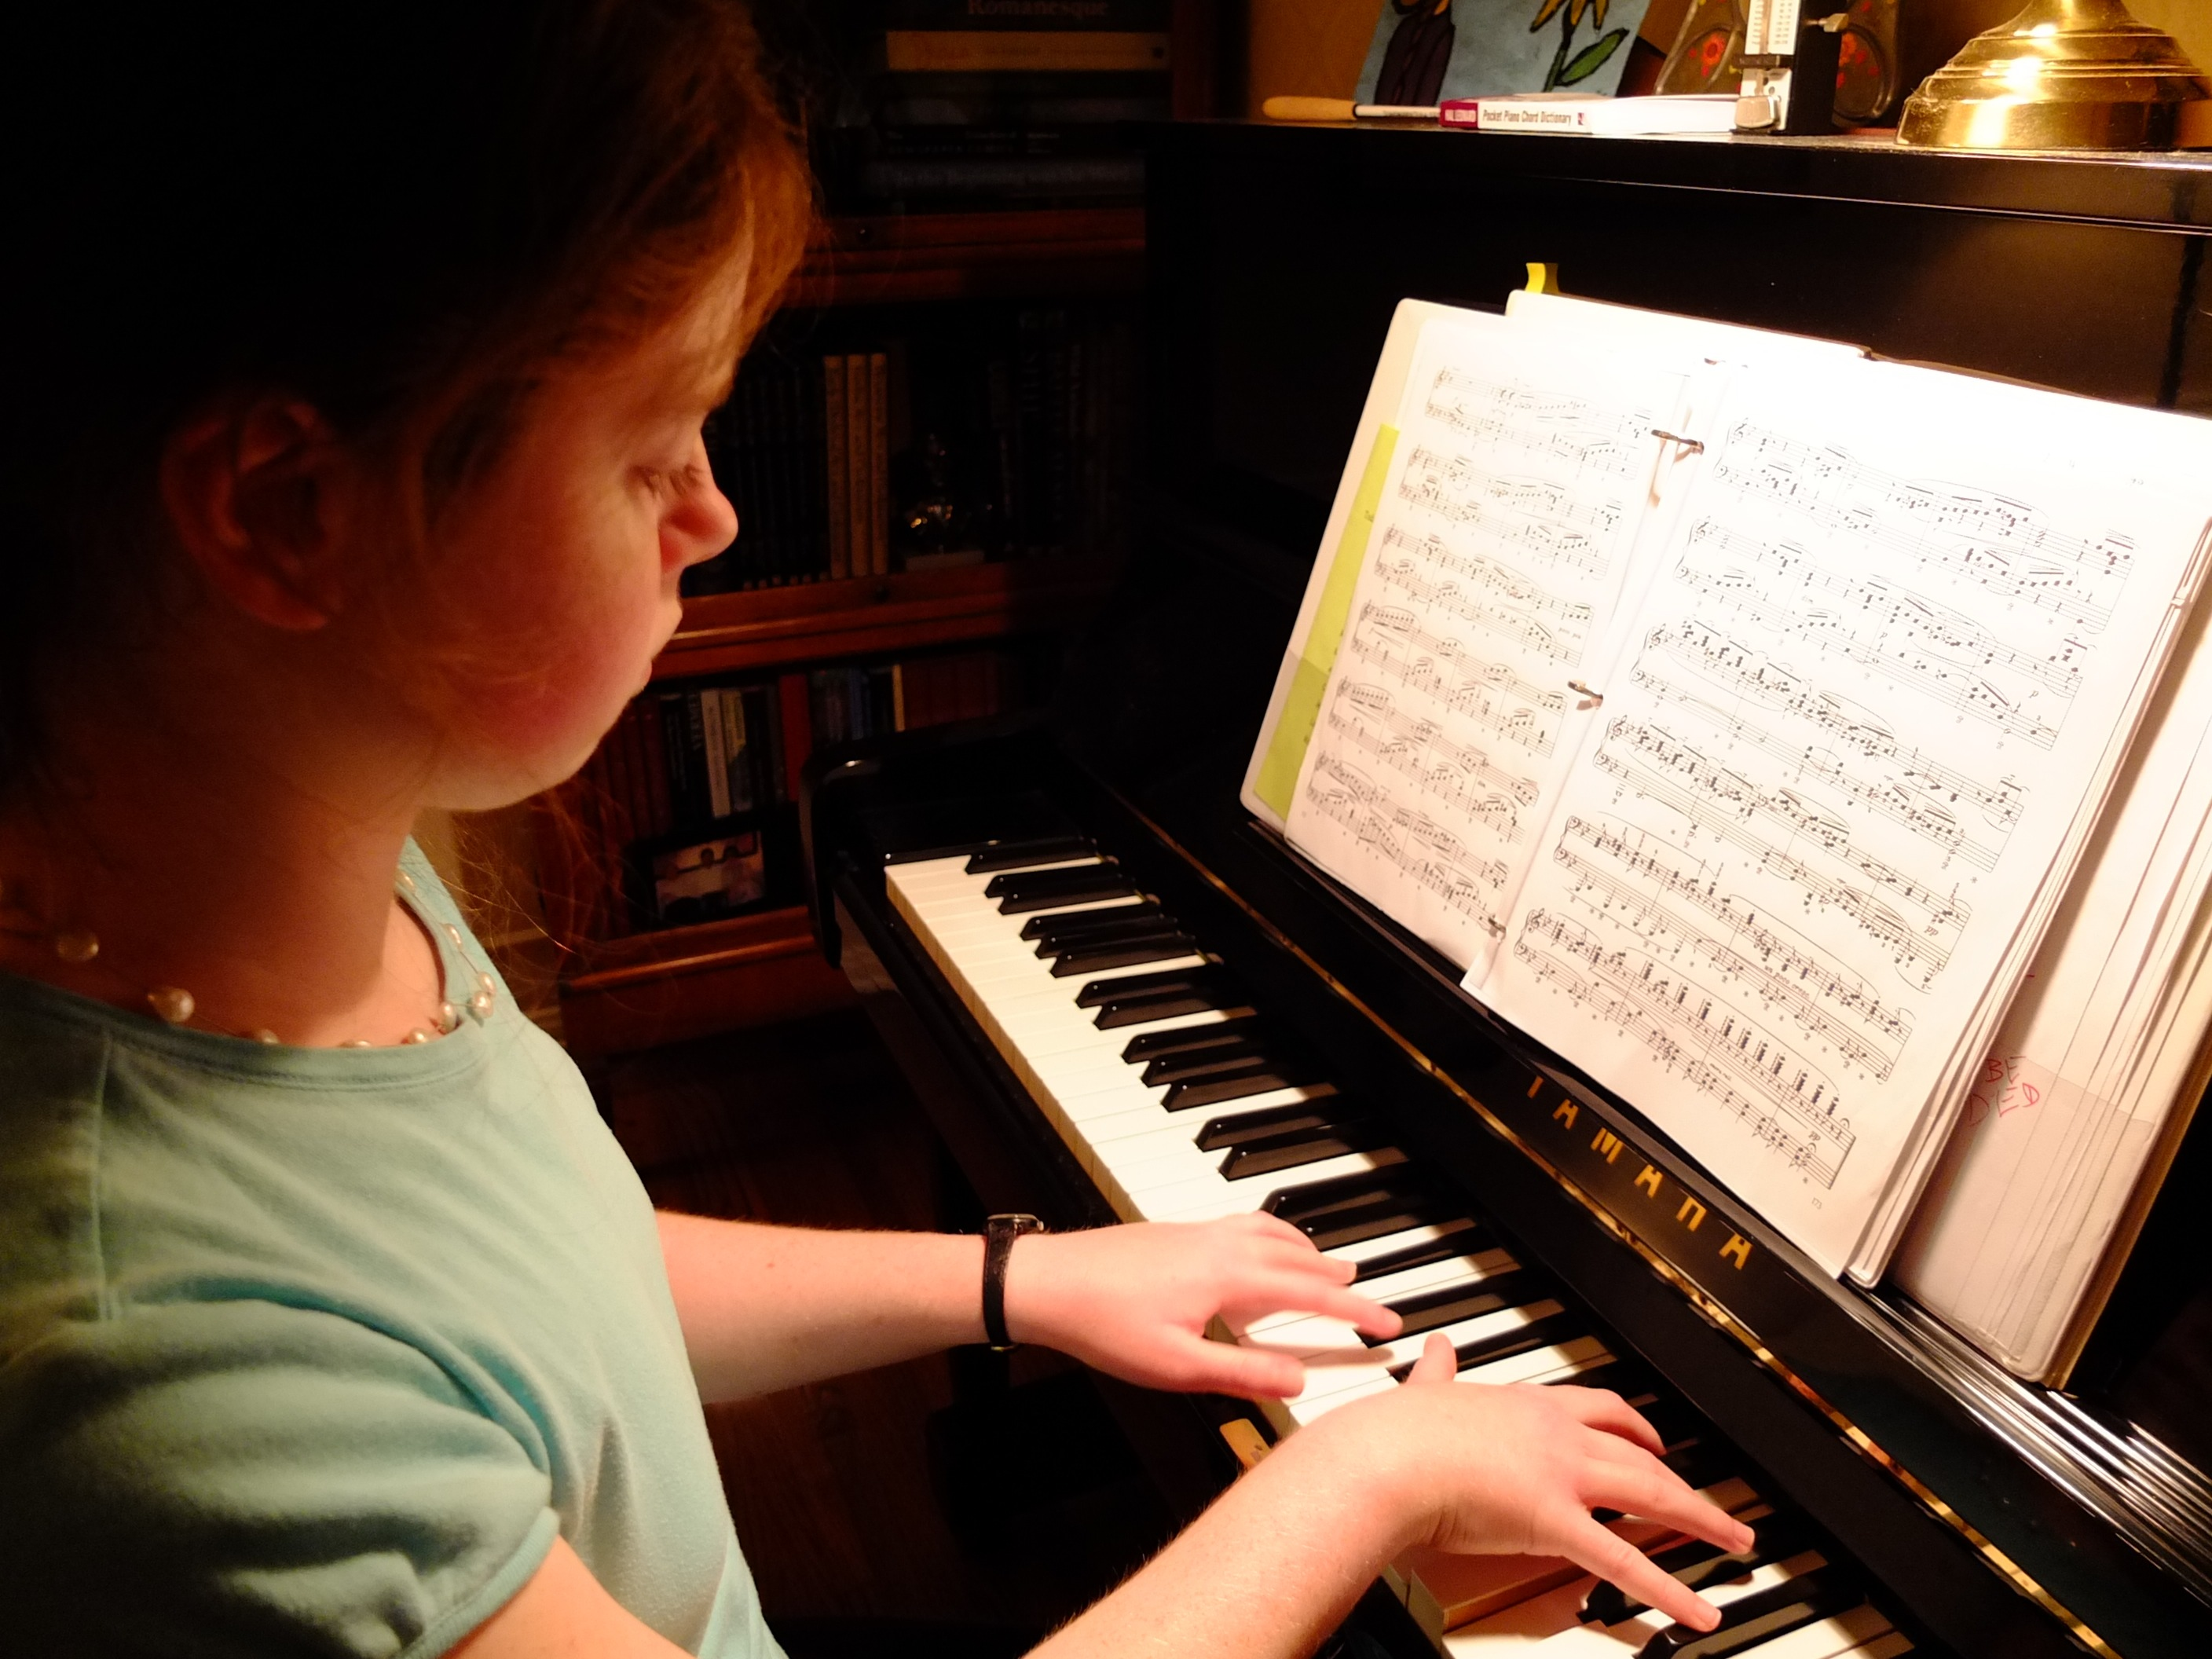 Essay About The Piano Lesson